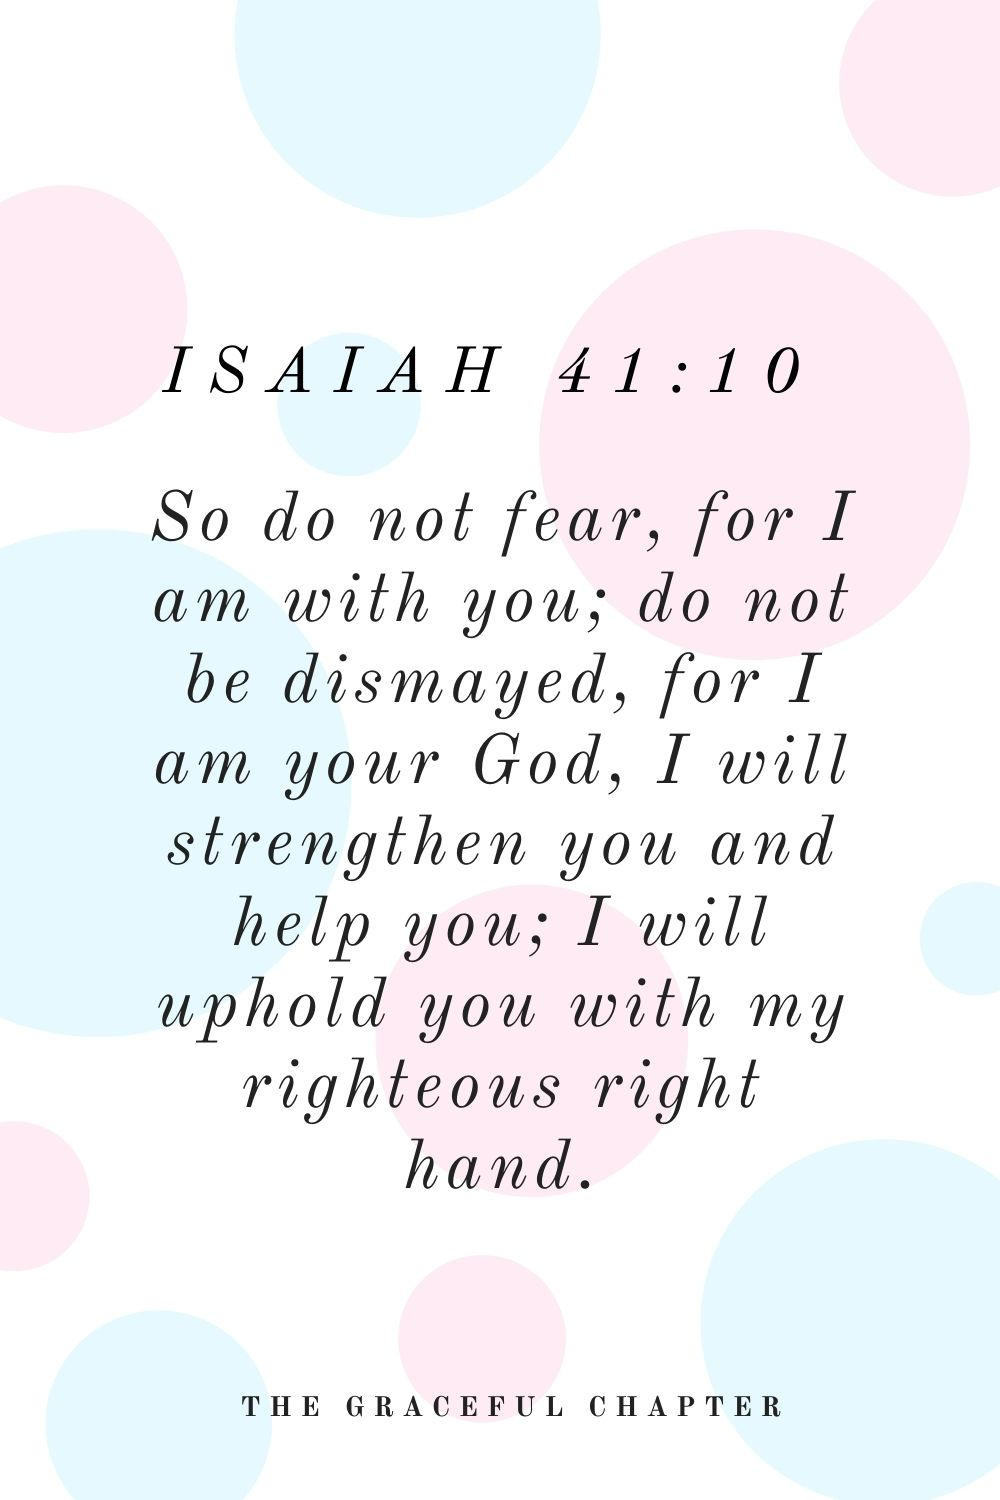 So do not fear, for I am with you; do not be dismayed, for I am your God, I will strengthen you and help you; I will uphold you with my righteous right hand. Isaiah 41:10